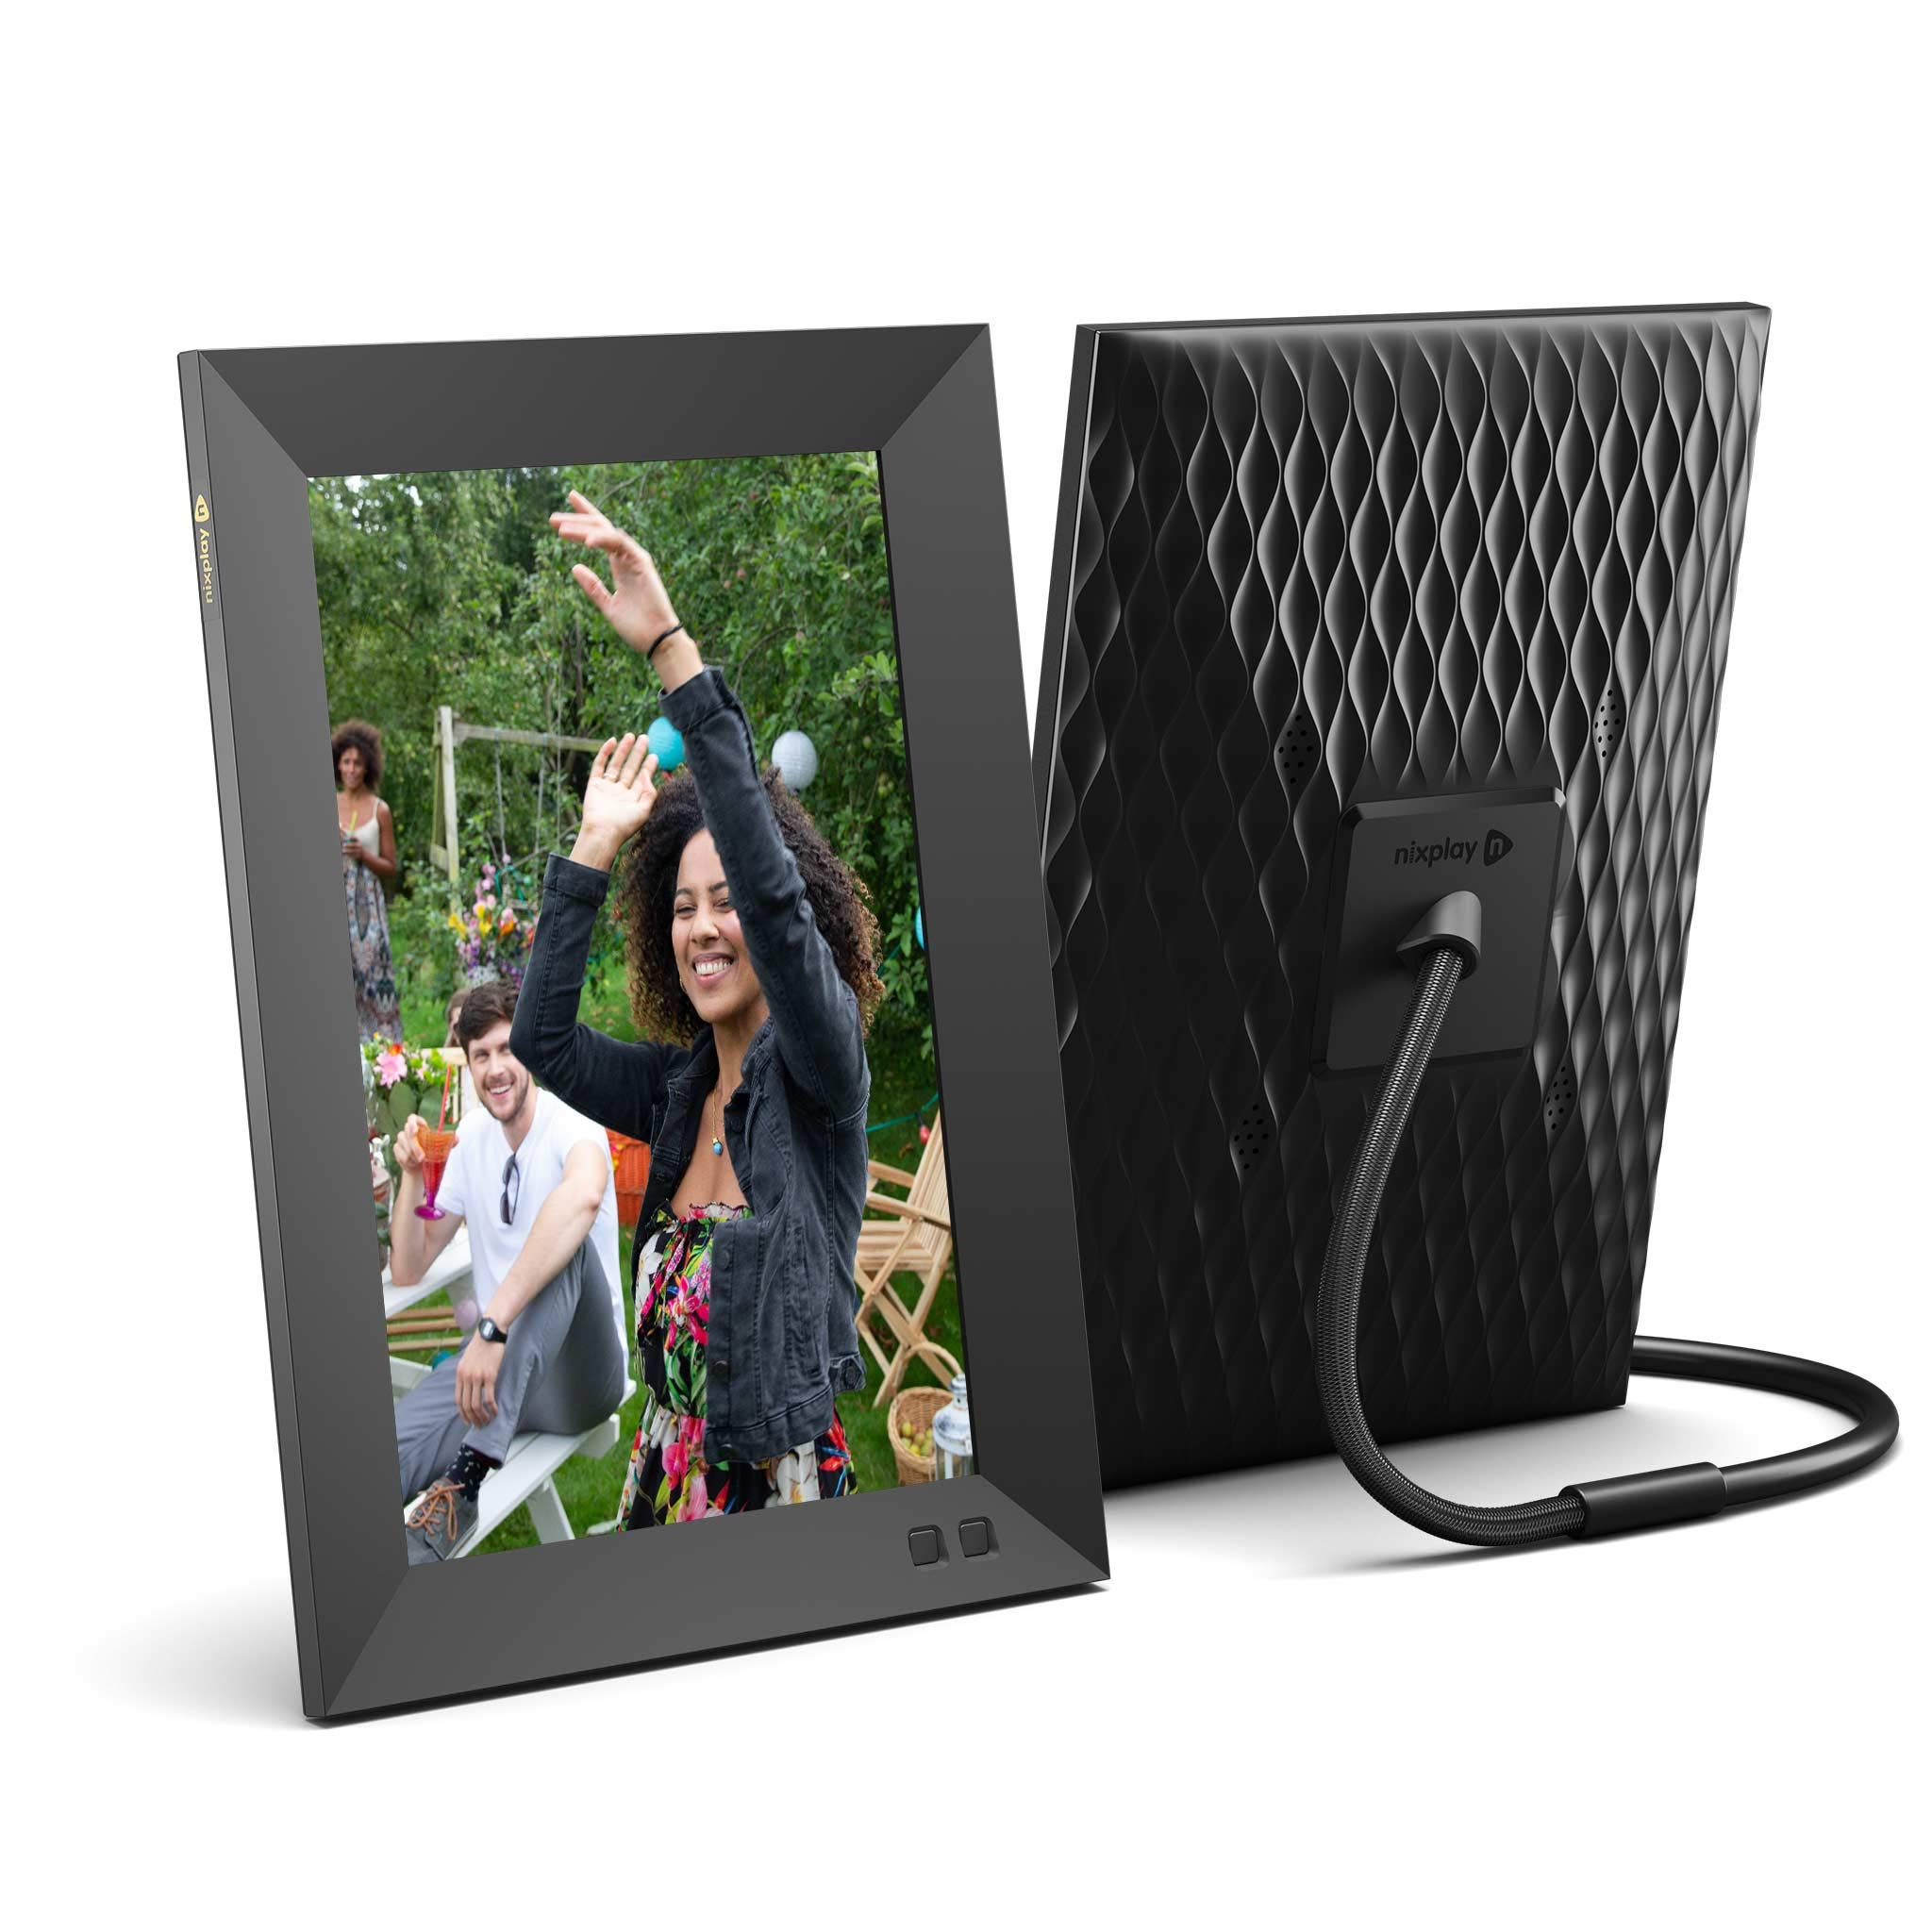 Nixplay 10.1 Inch Smart Photo Frame W10F Black - Digital WiFi Picture Frame with 1280x800 HD Display, Motion Sensor and 10GB Online Storage, Display and Share Photos via Nixplay Mobile App by nixplay